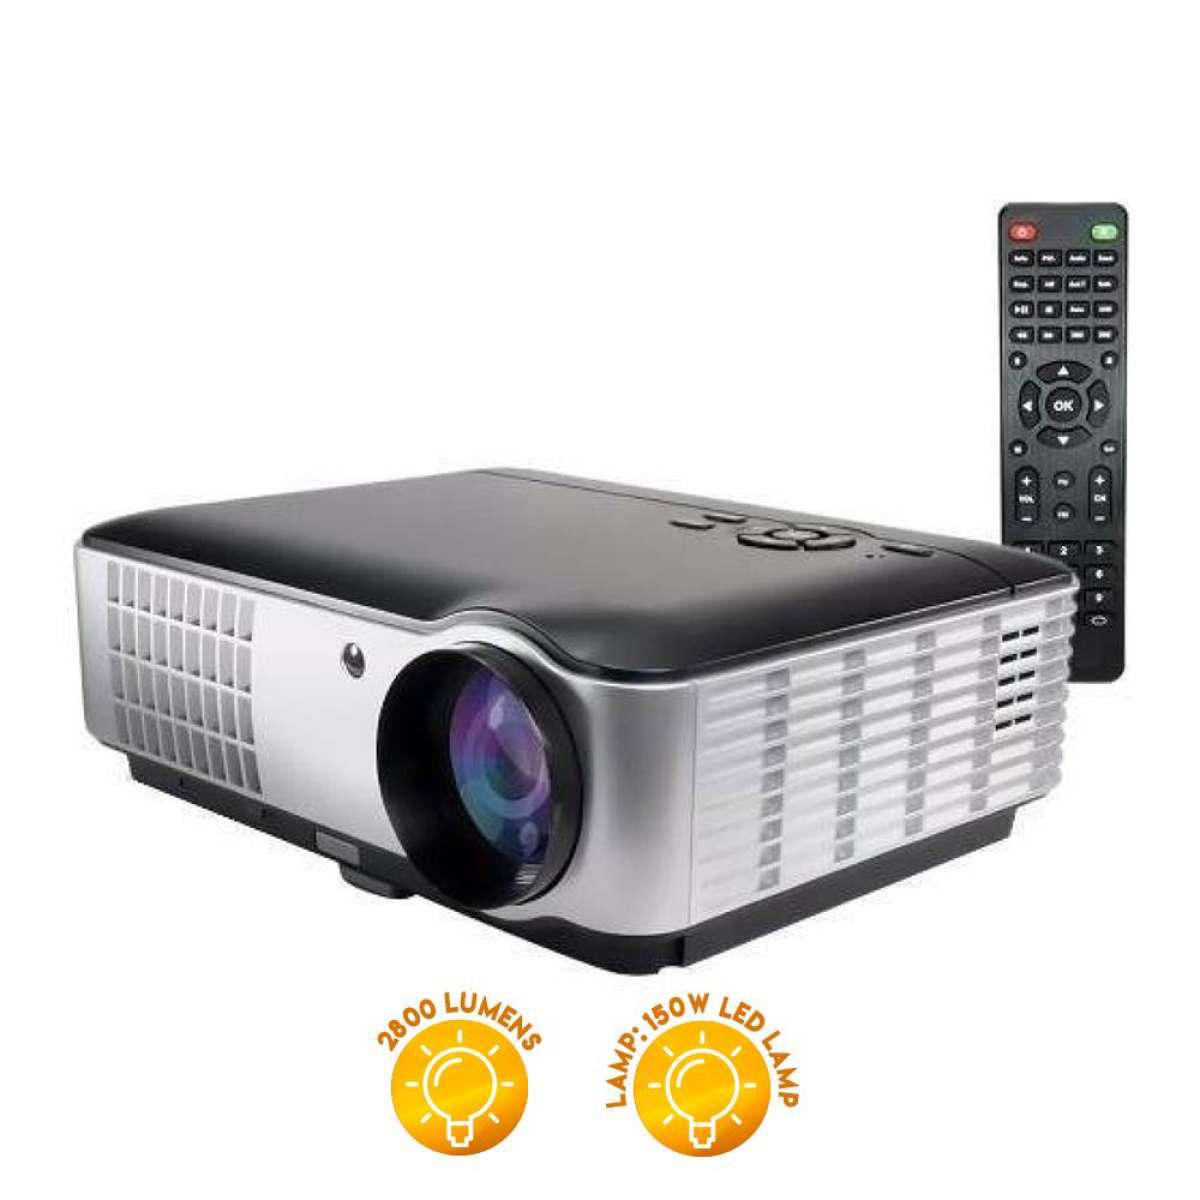 Unic Philippines Price List Projectors For Sale Lazada Proyektor Uc40 Led Mini Rd 806 Hd 2800 Lumens Projector Black